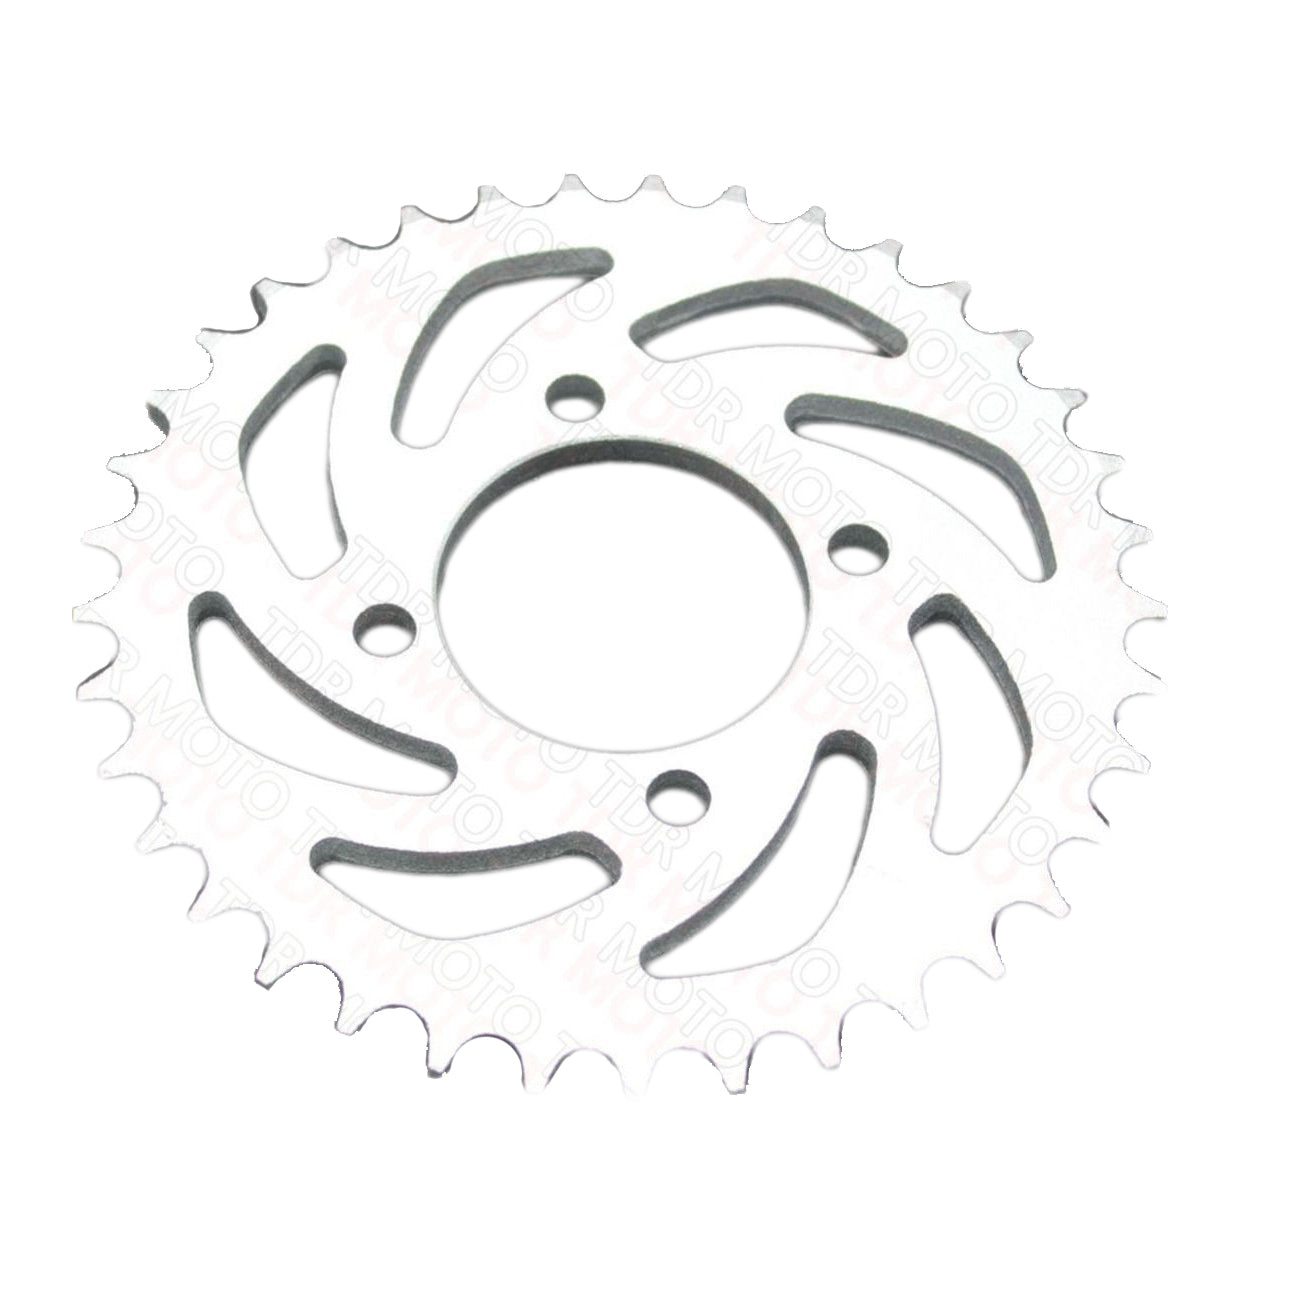 37T 428 Rear Sprocket Cog for Motorbike Thumpstar Atomic Dirt Bike 70/110/125cc